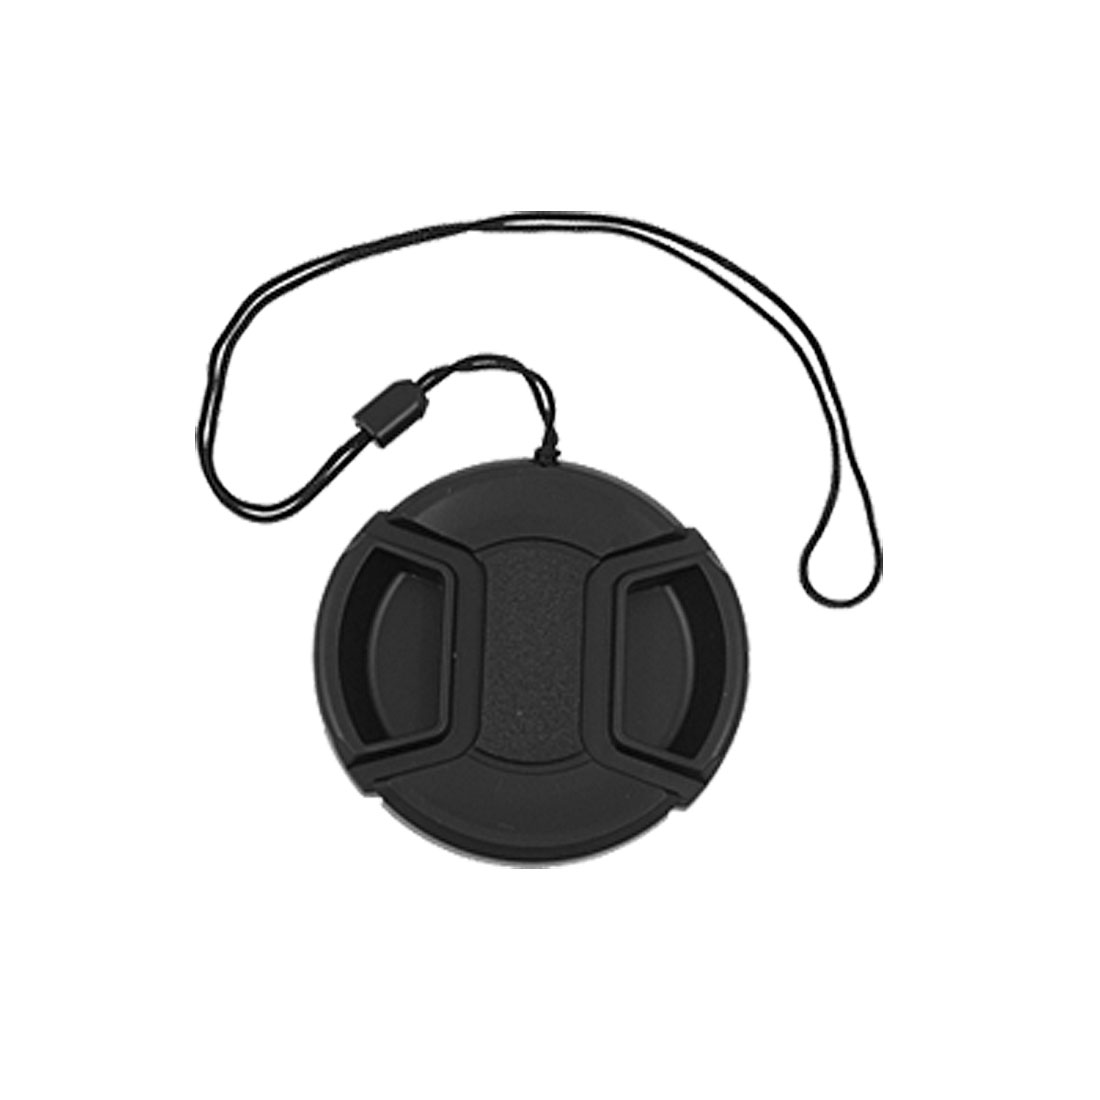 55mm Center Pinch Snap Front Lens Cap Hood Cover for Filter